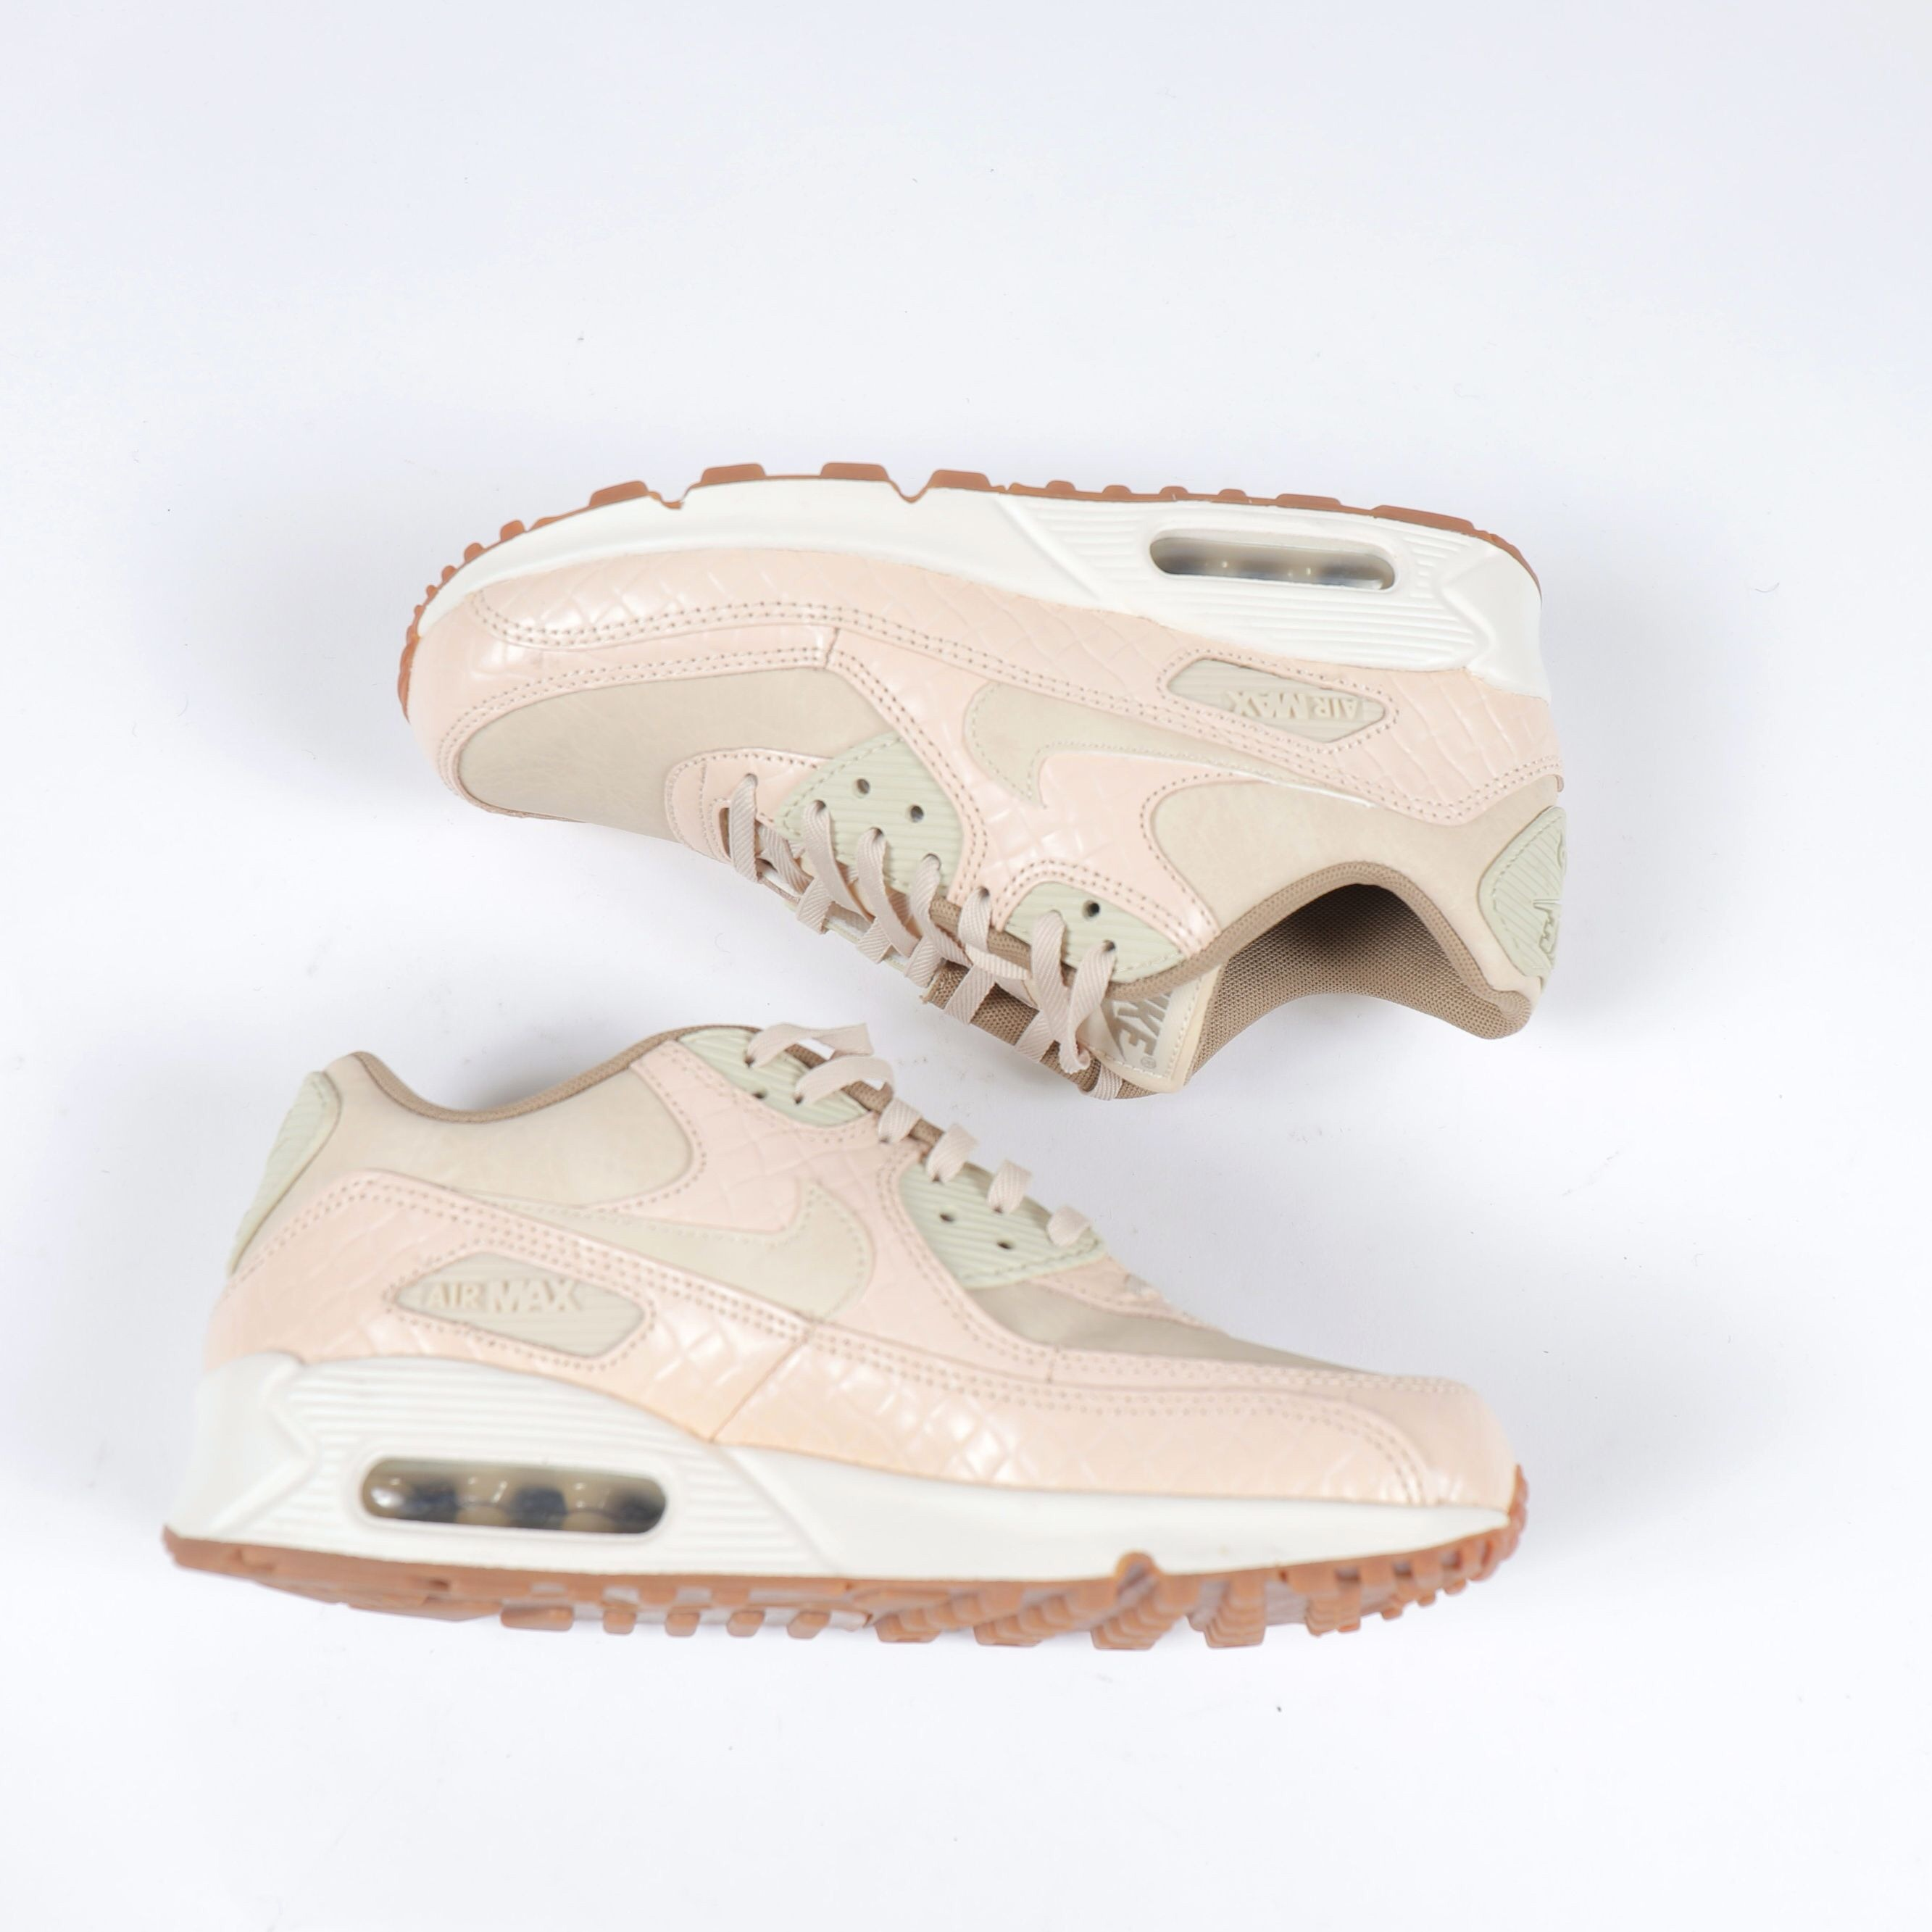 Nike Air Max 90 in pink croc and cream suede. Size... - Depop